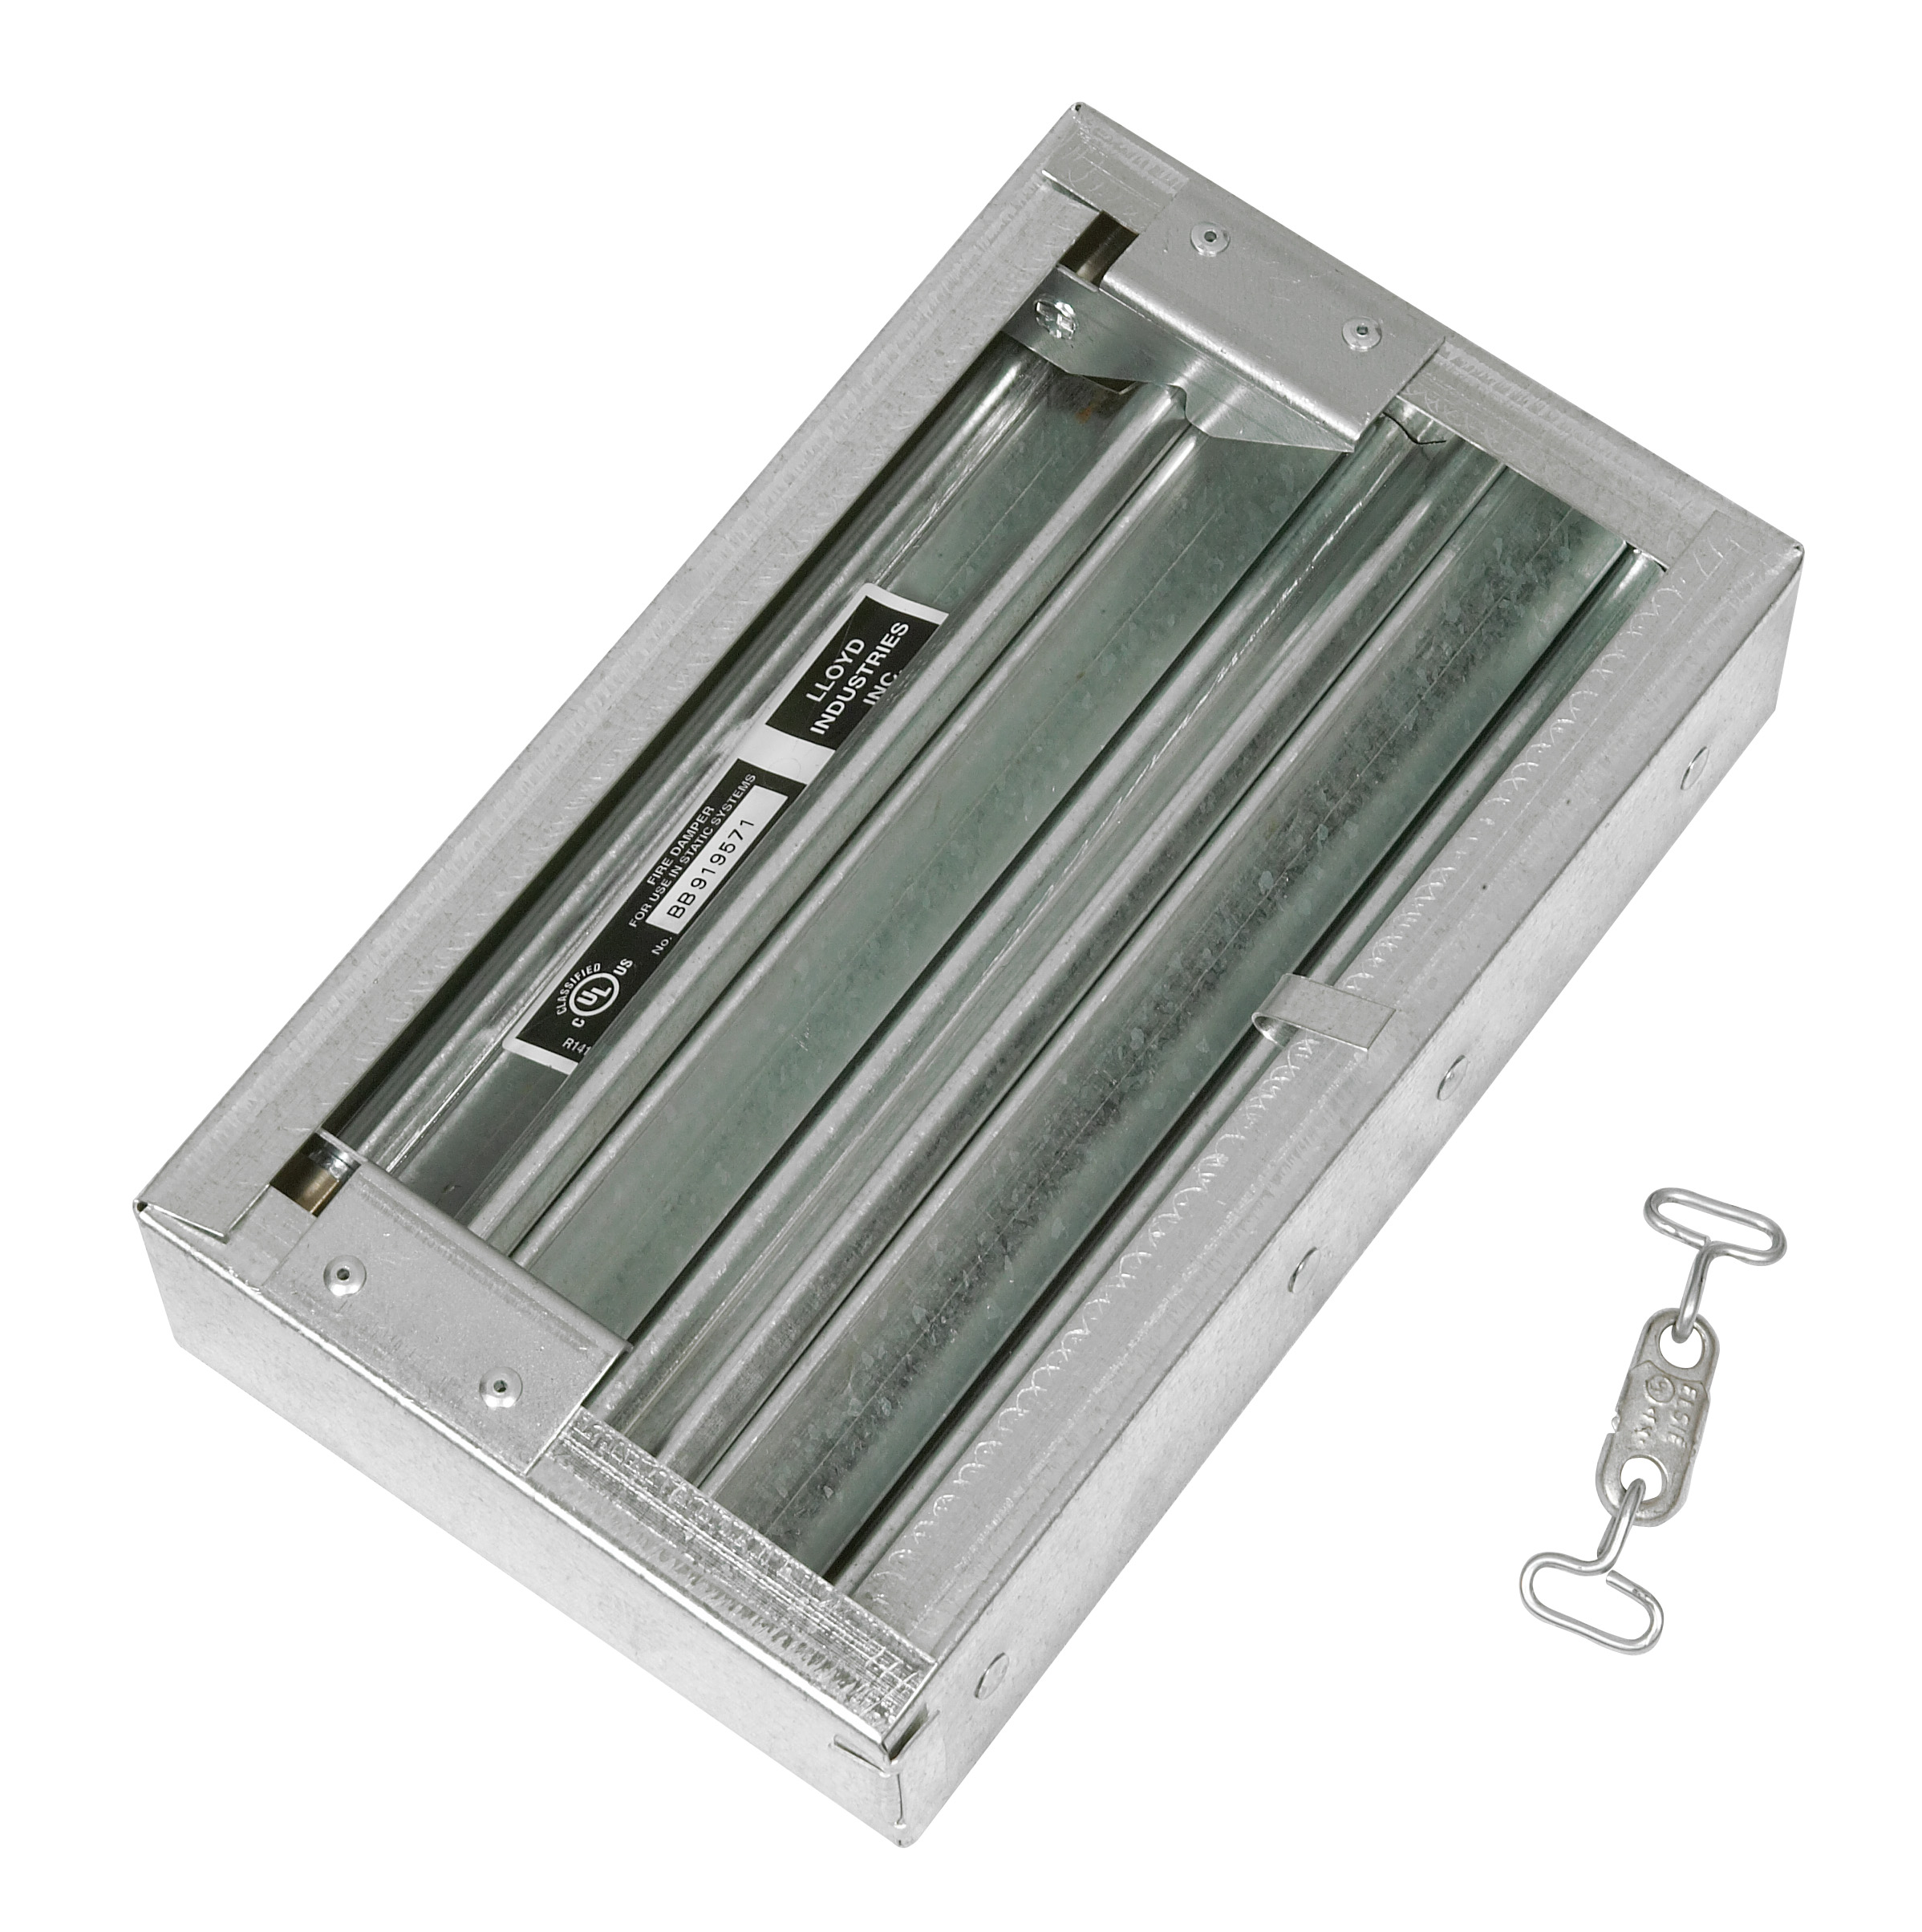 Roof Smoke Damper Hour Dynamic Thin Fire Damper 75d Dy